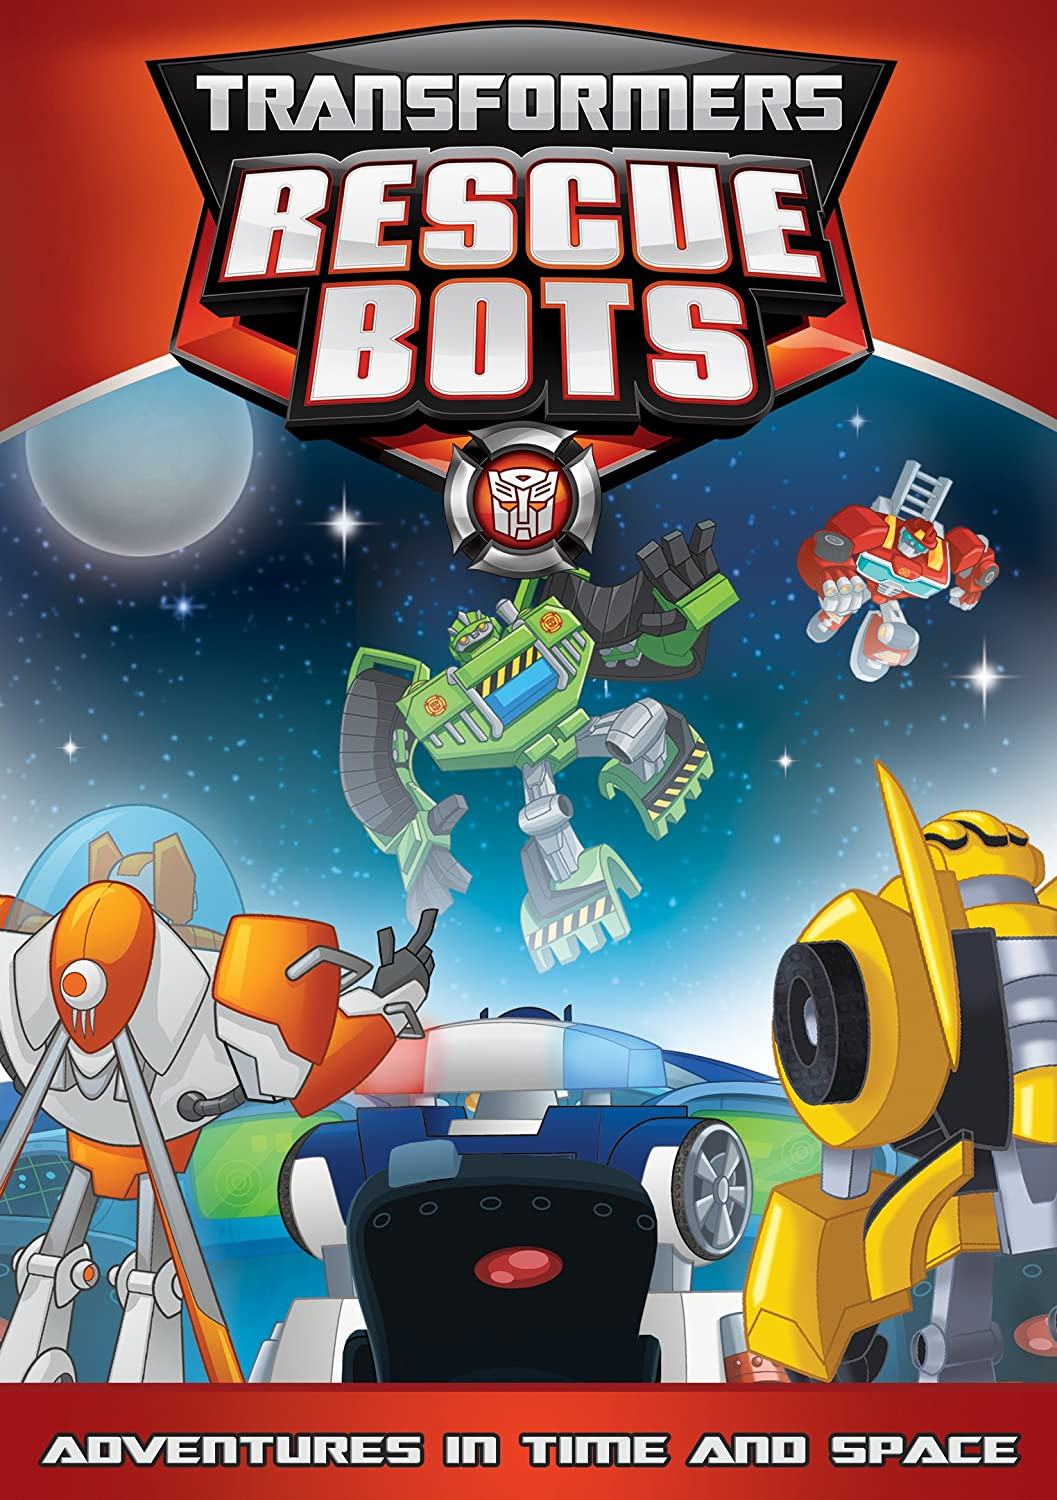 Transformers Rescue Bots Background Transformers Rescue Bots Transformers  For. Transformers Rescue Bots ...